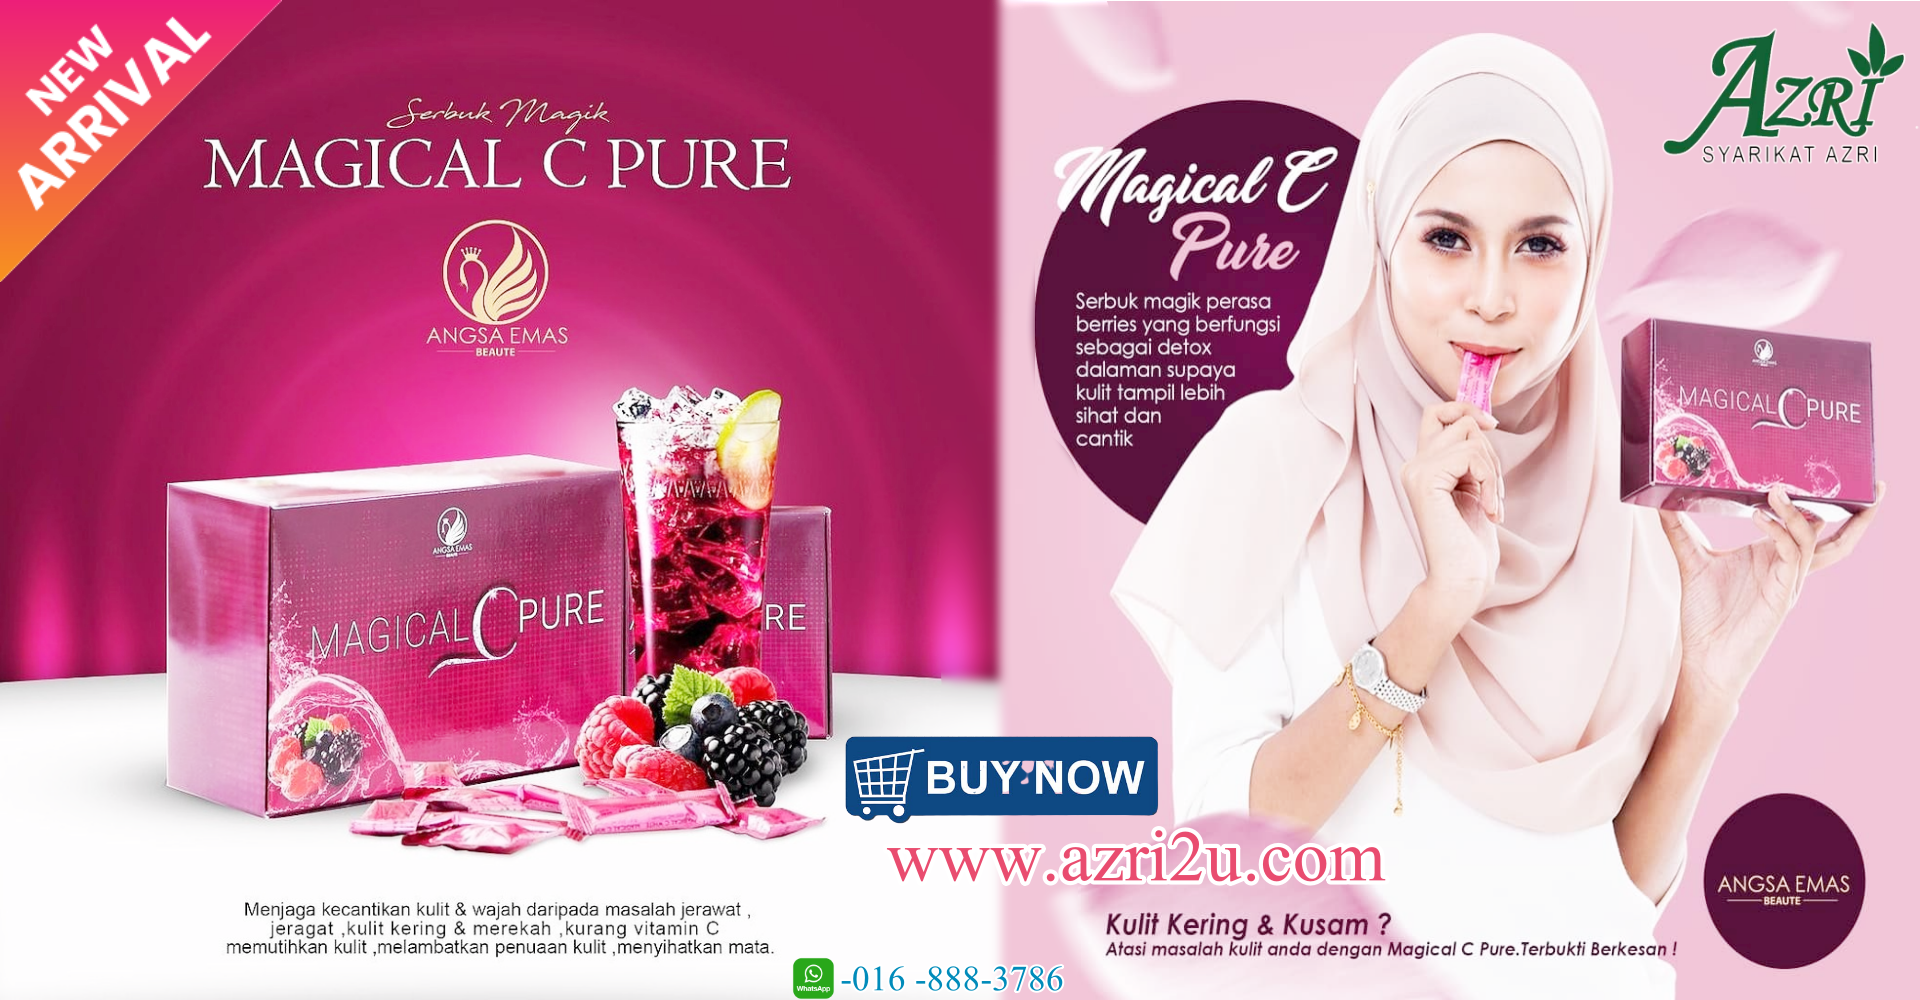 MAGIC C PURE